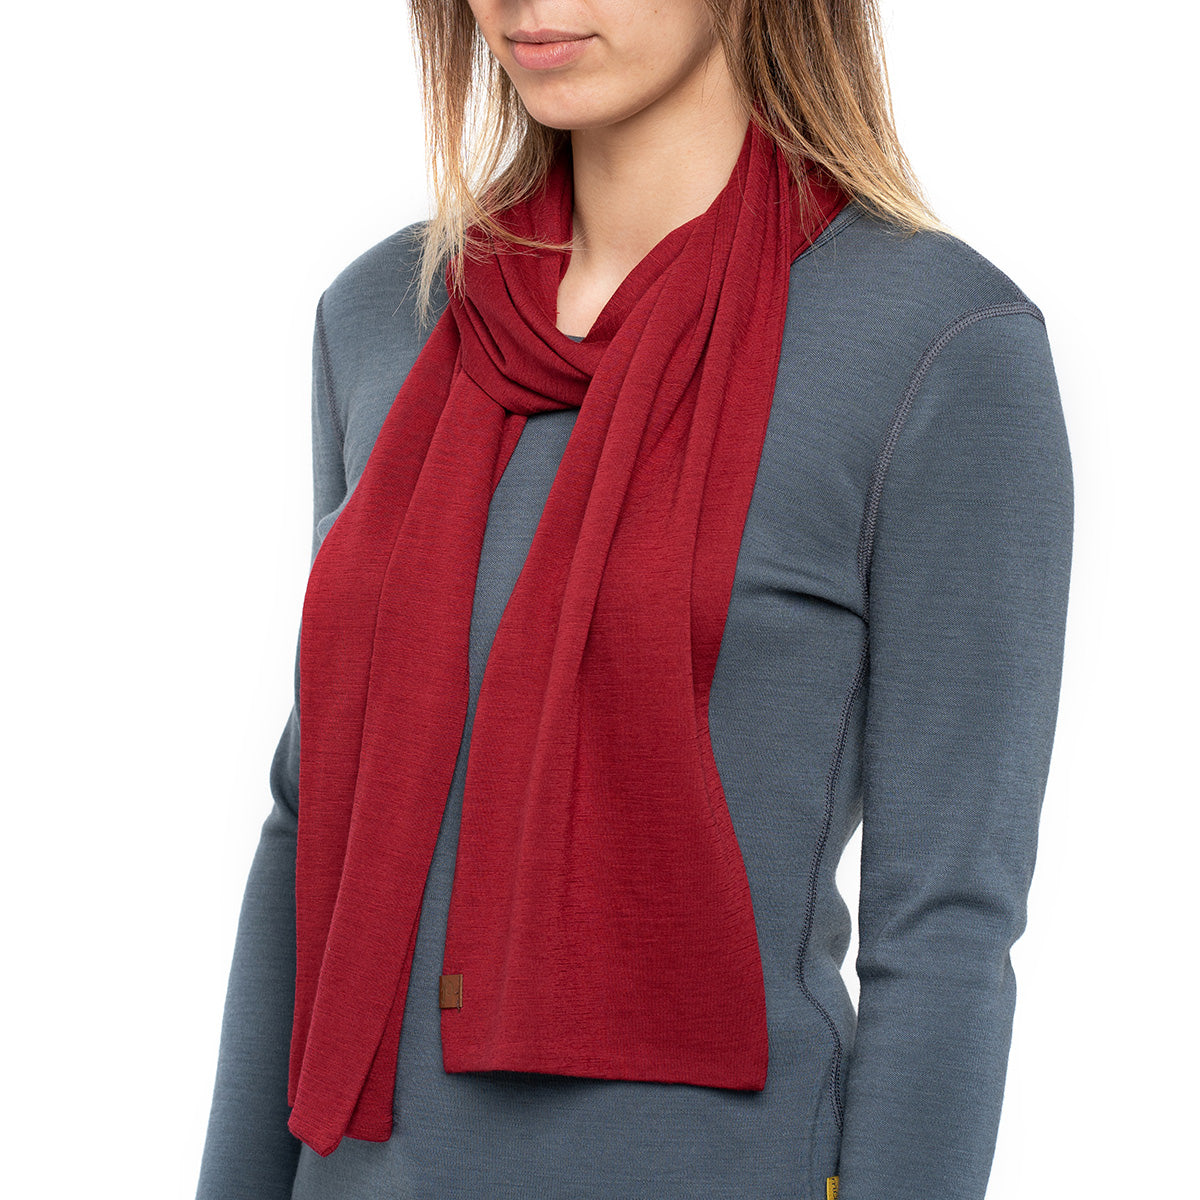 menique Women's Merino Scarf Royal Cherry Color